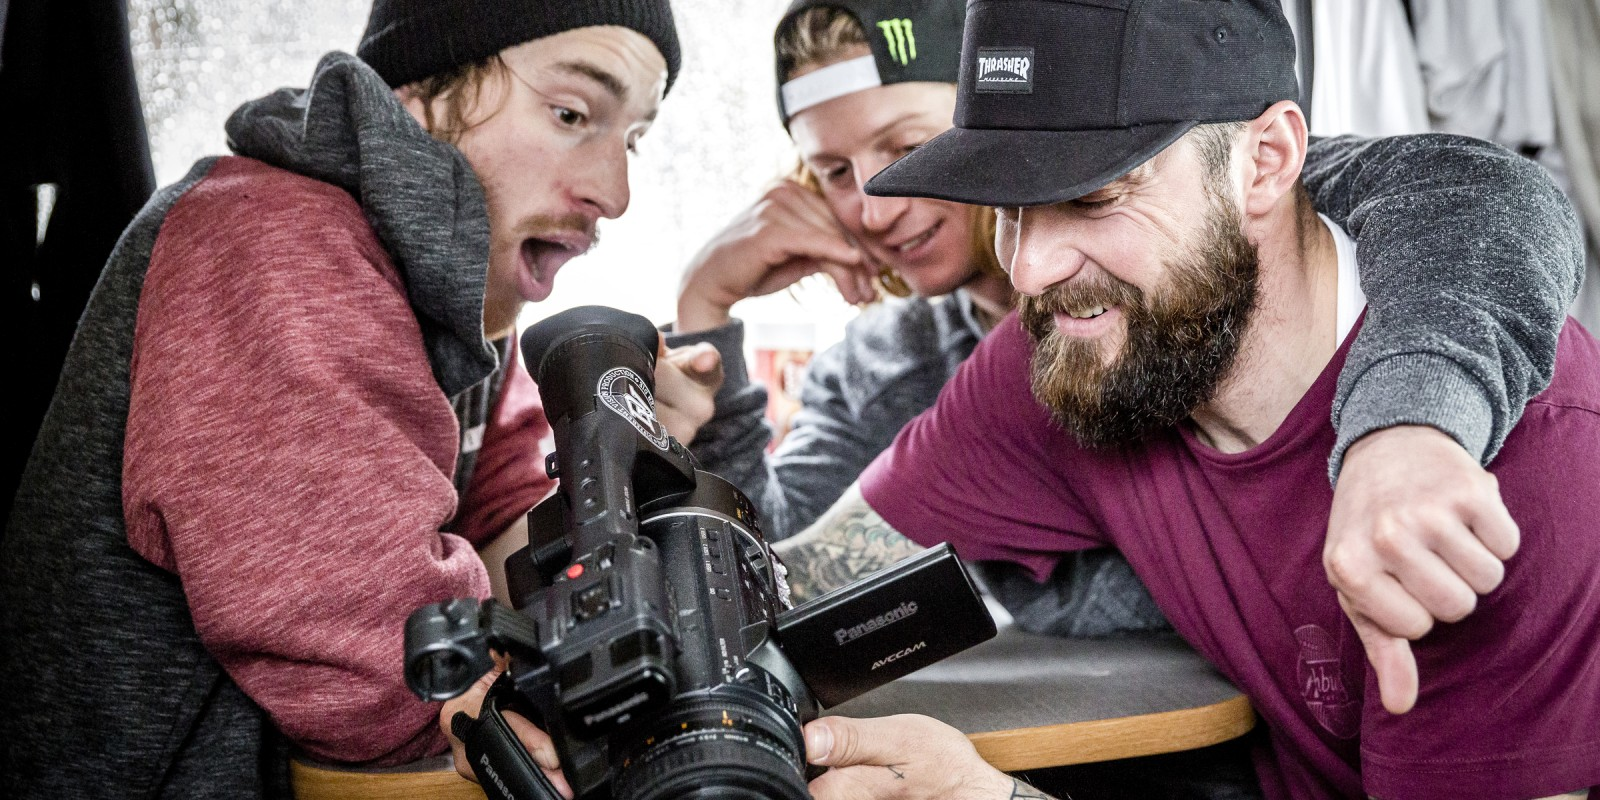 Gruber/Morgan in Searching For snowboard movie